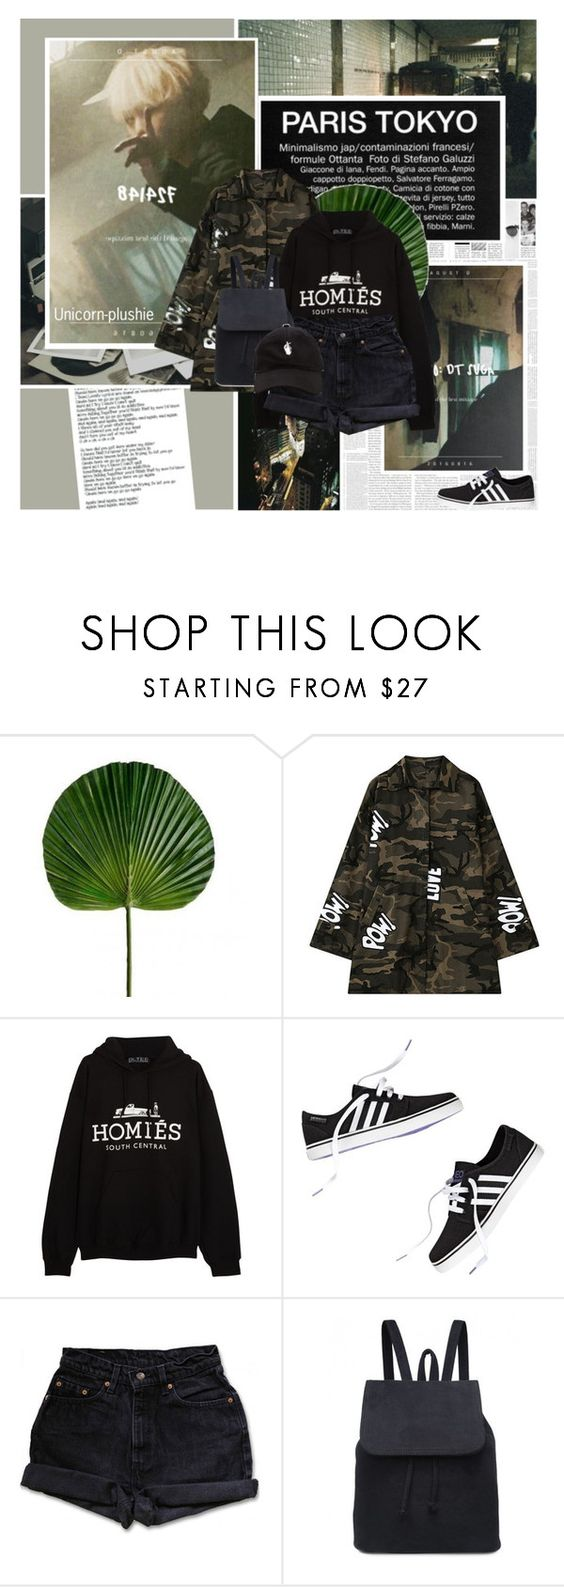 """""""428: A To The G To The U To The STD"""" by unicorn-plushie ❤ liked on Polyvore featuring Again, Polaroid, Chicnova Fashion, Brian Lichtenberg and Levi's"""